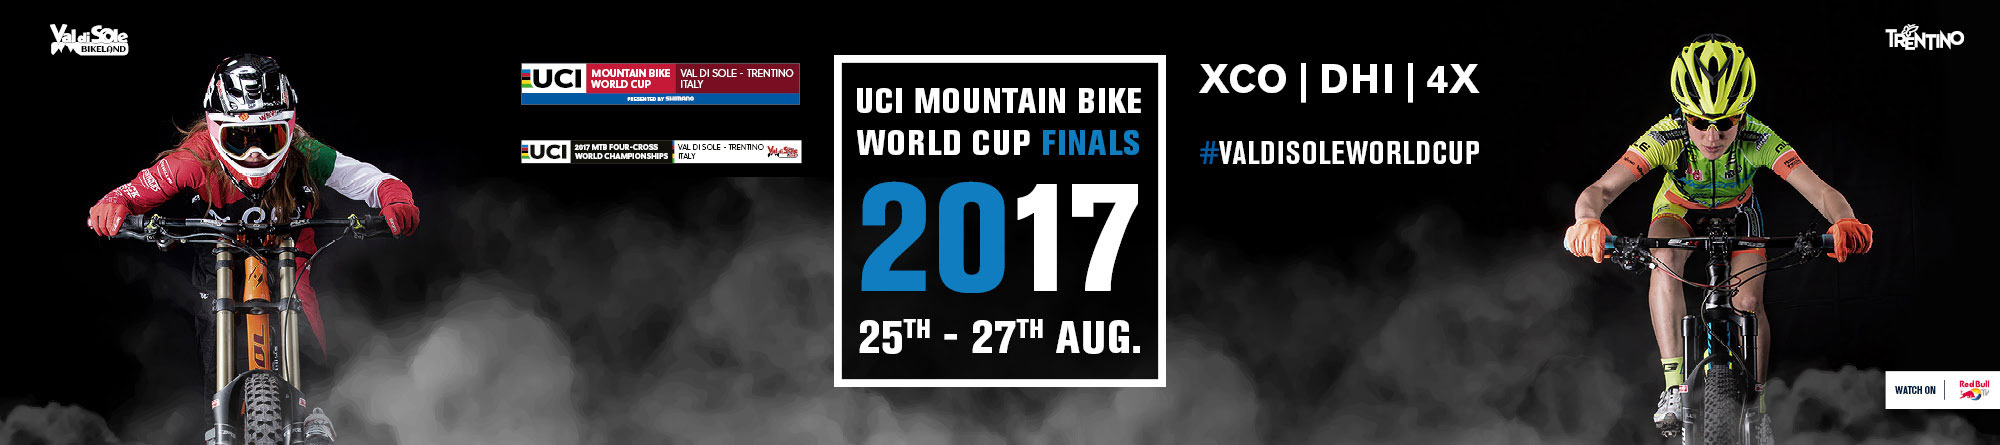 Classifiche - Coppa del Mondo MTB 2017 XCO | DHI | 4X